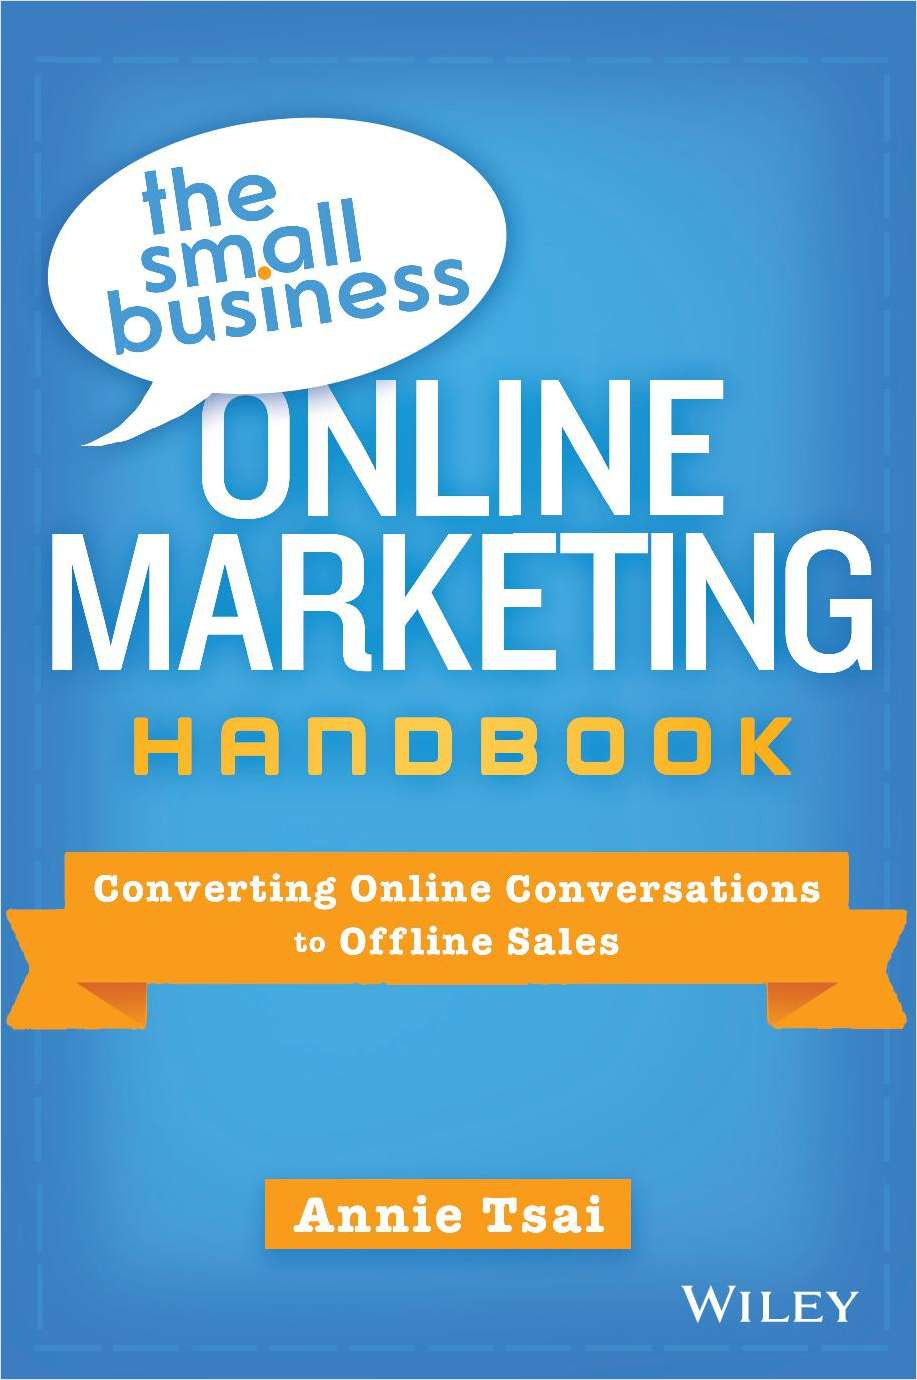 The Small Business Online Marketing Handbook: Converting Online Conversations to Offline Sales--Free Sample Chapter